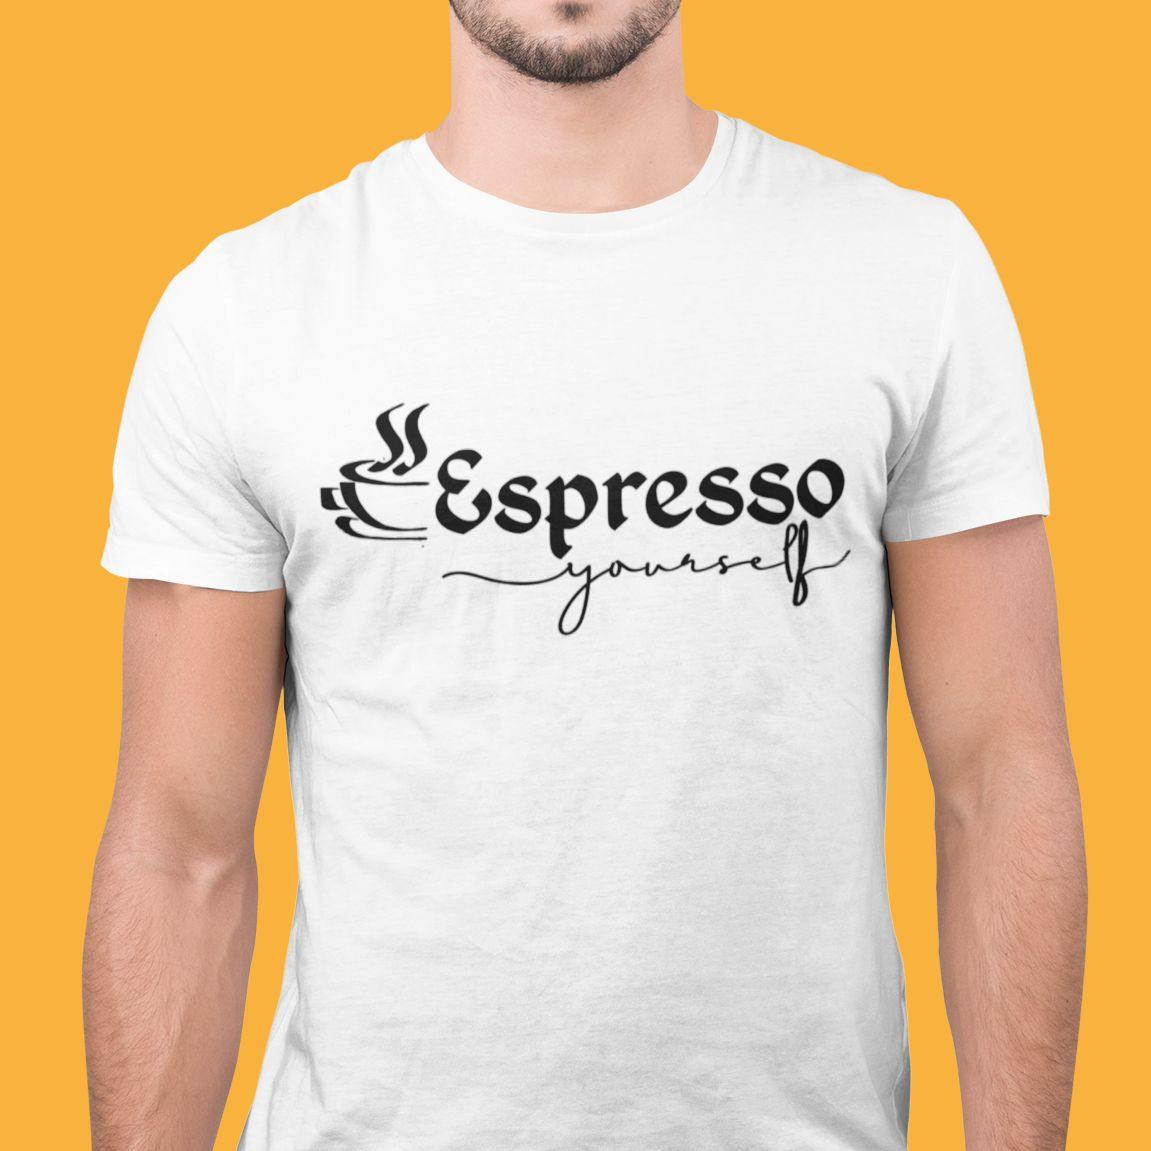 Espresso Yourself - Men's Tshirt - Daily Suvichar Store